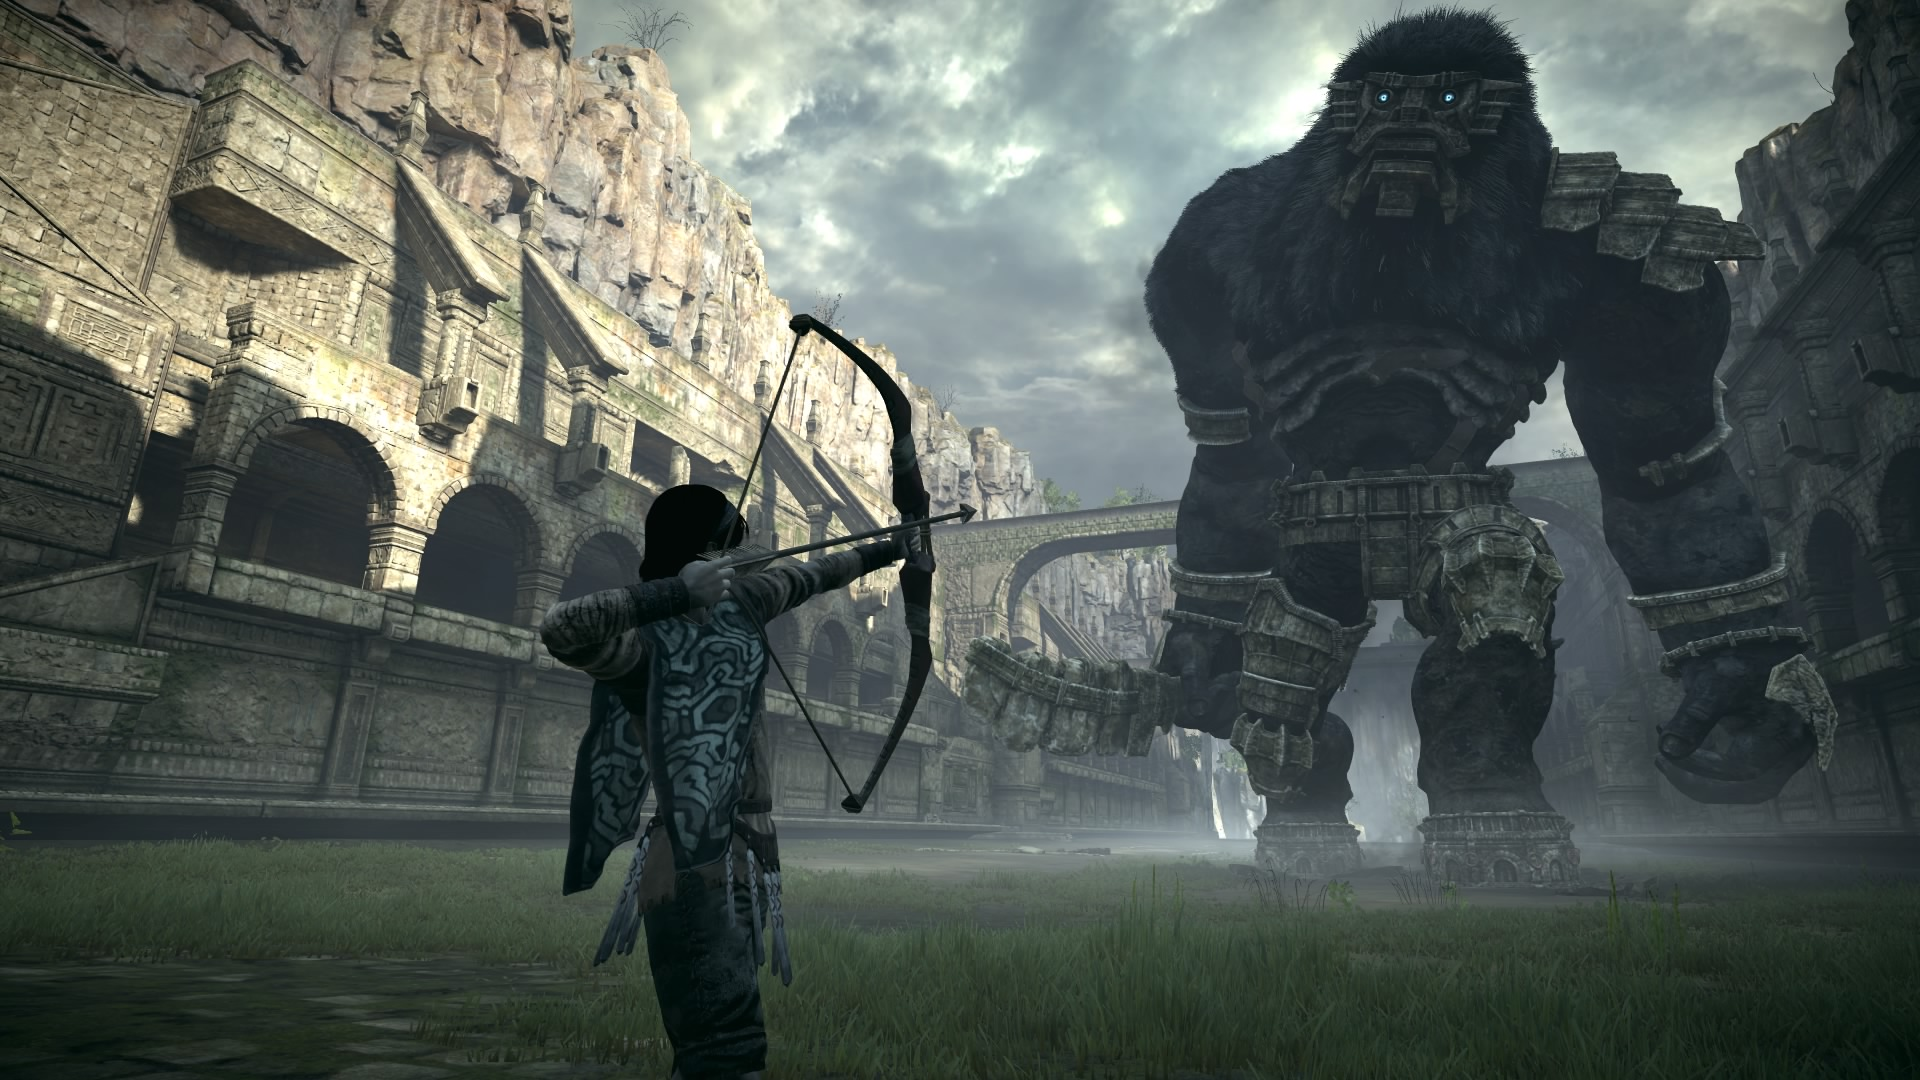 Shadow of the Colossus: Vale a Pena? 8